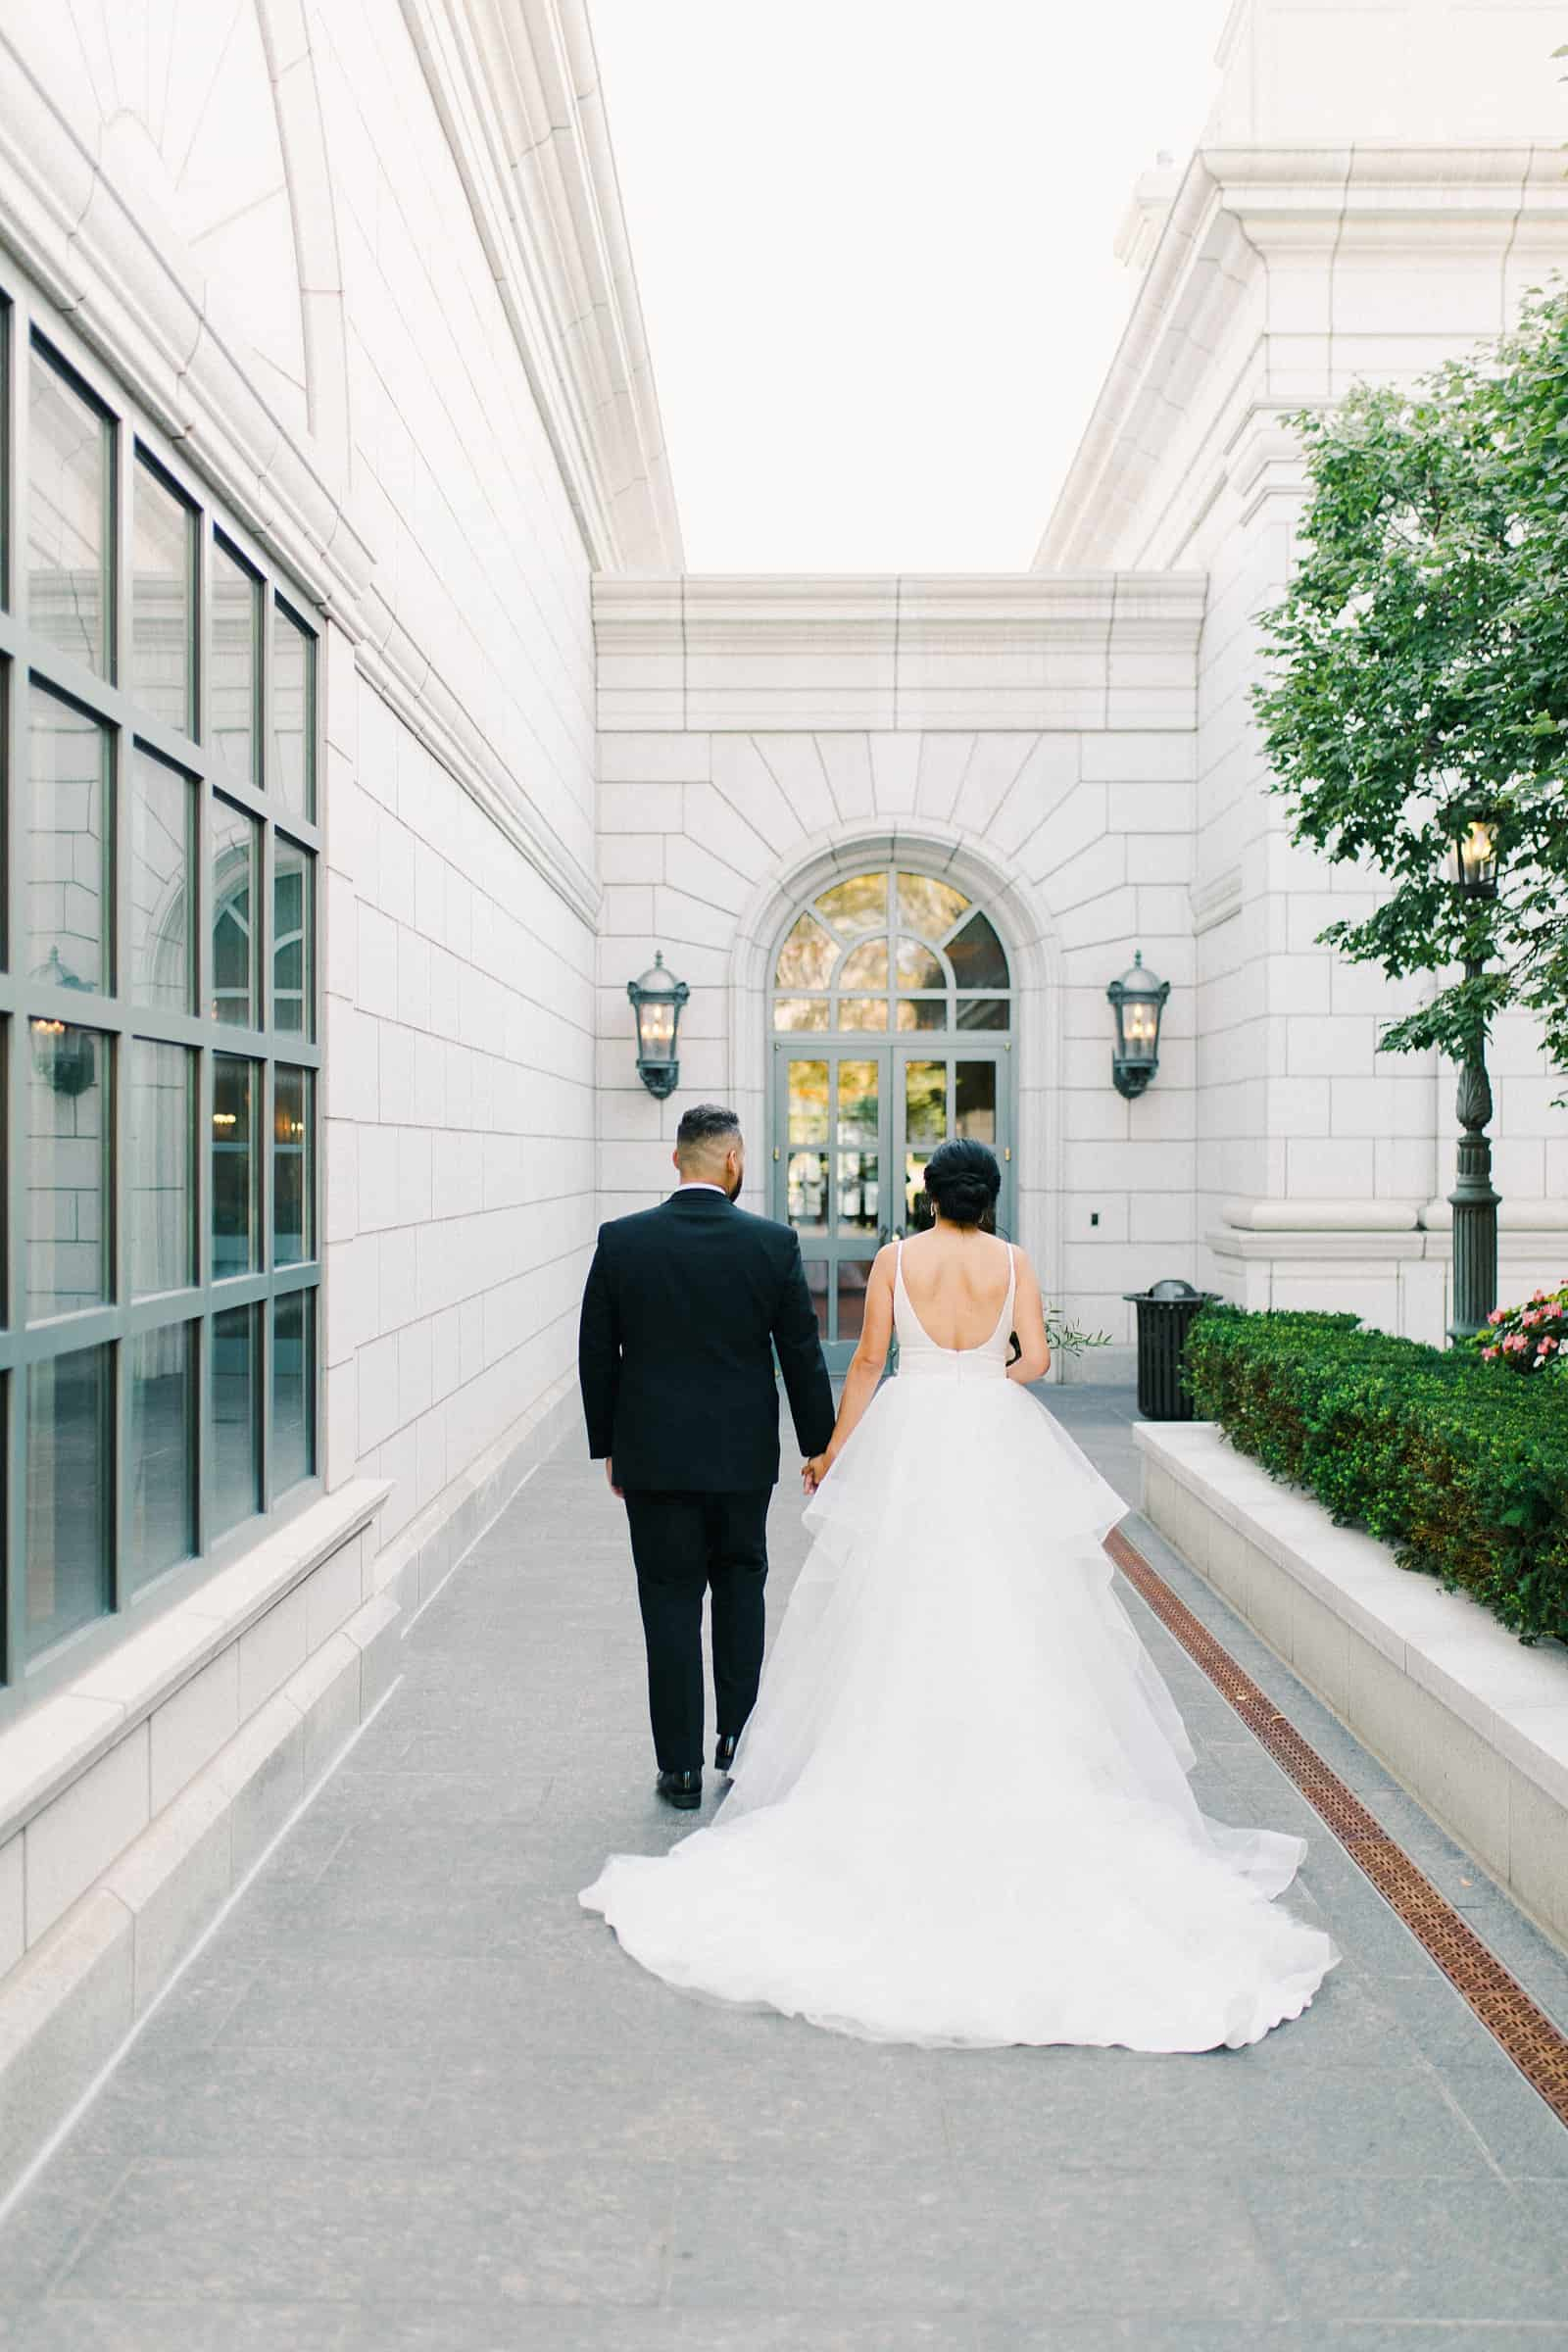 Groom and bride with long train walk together